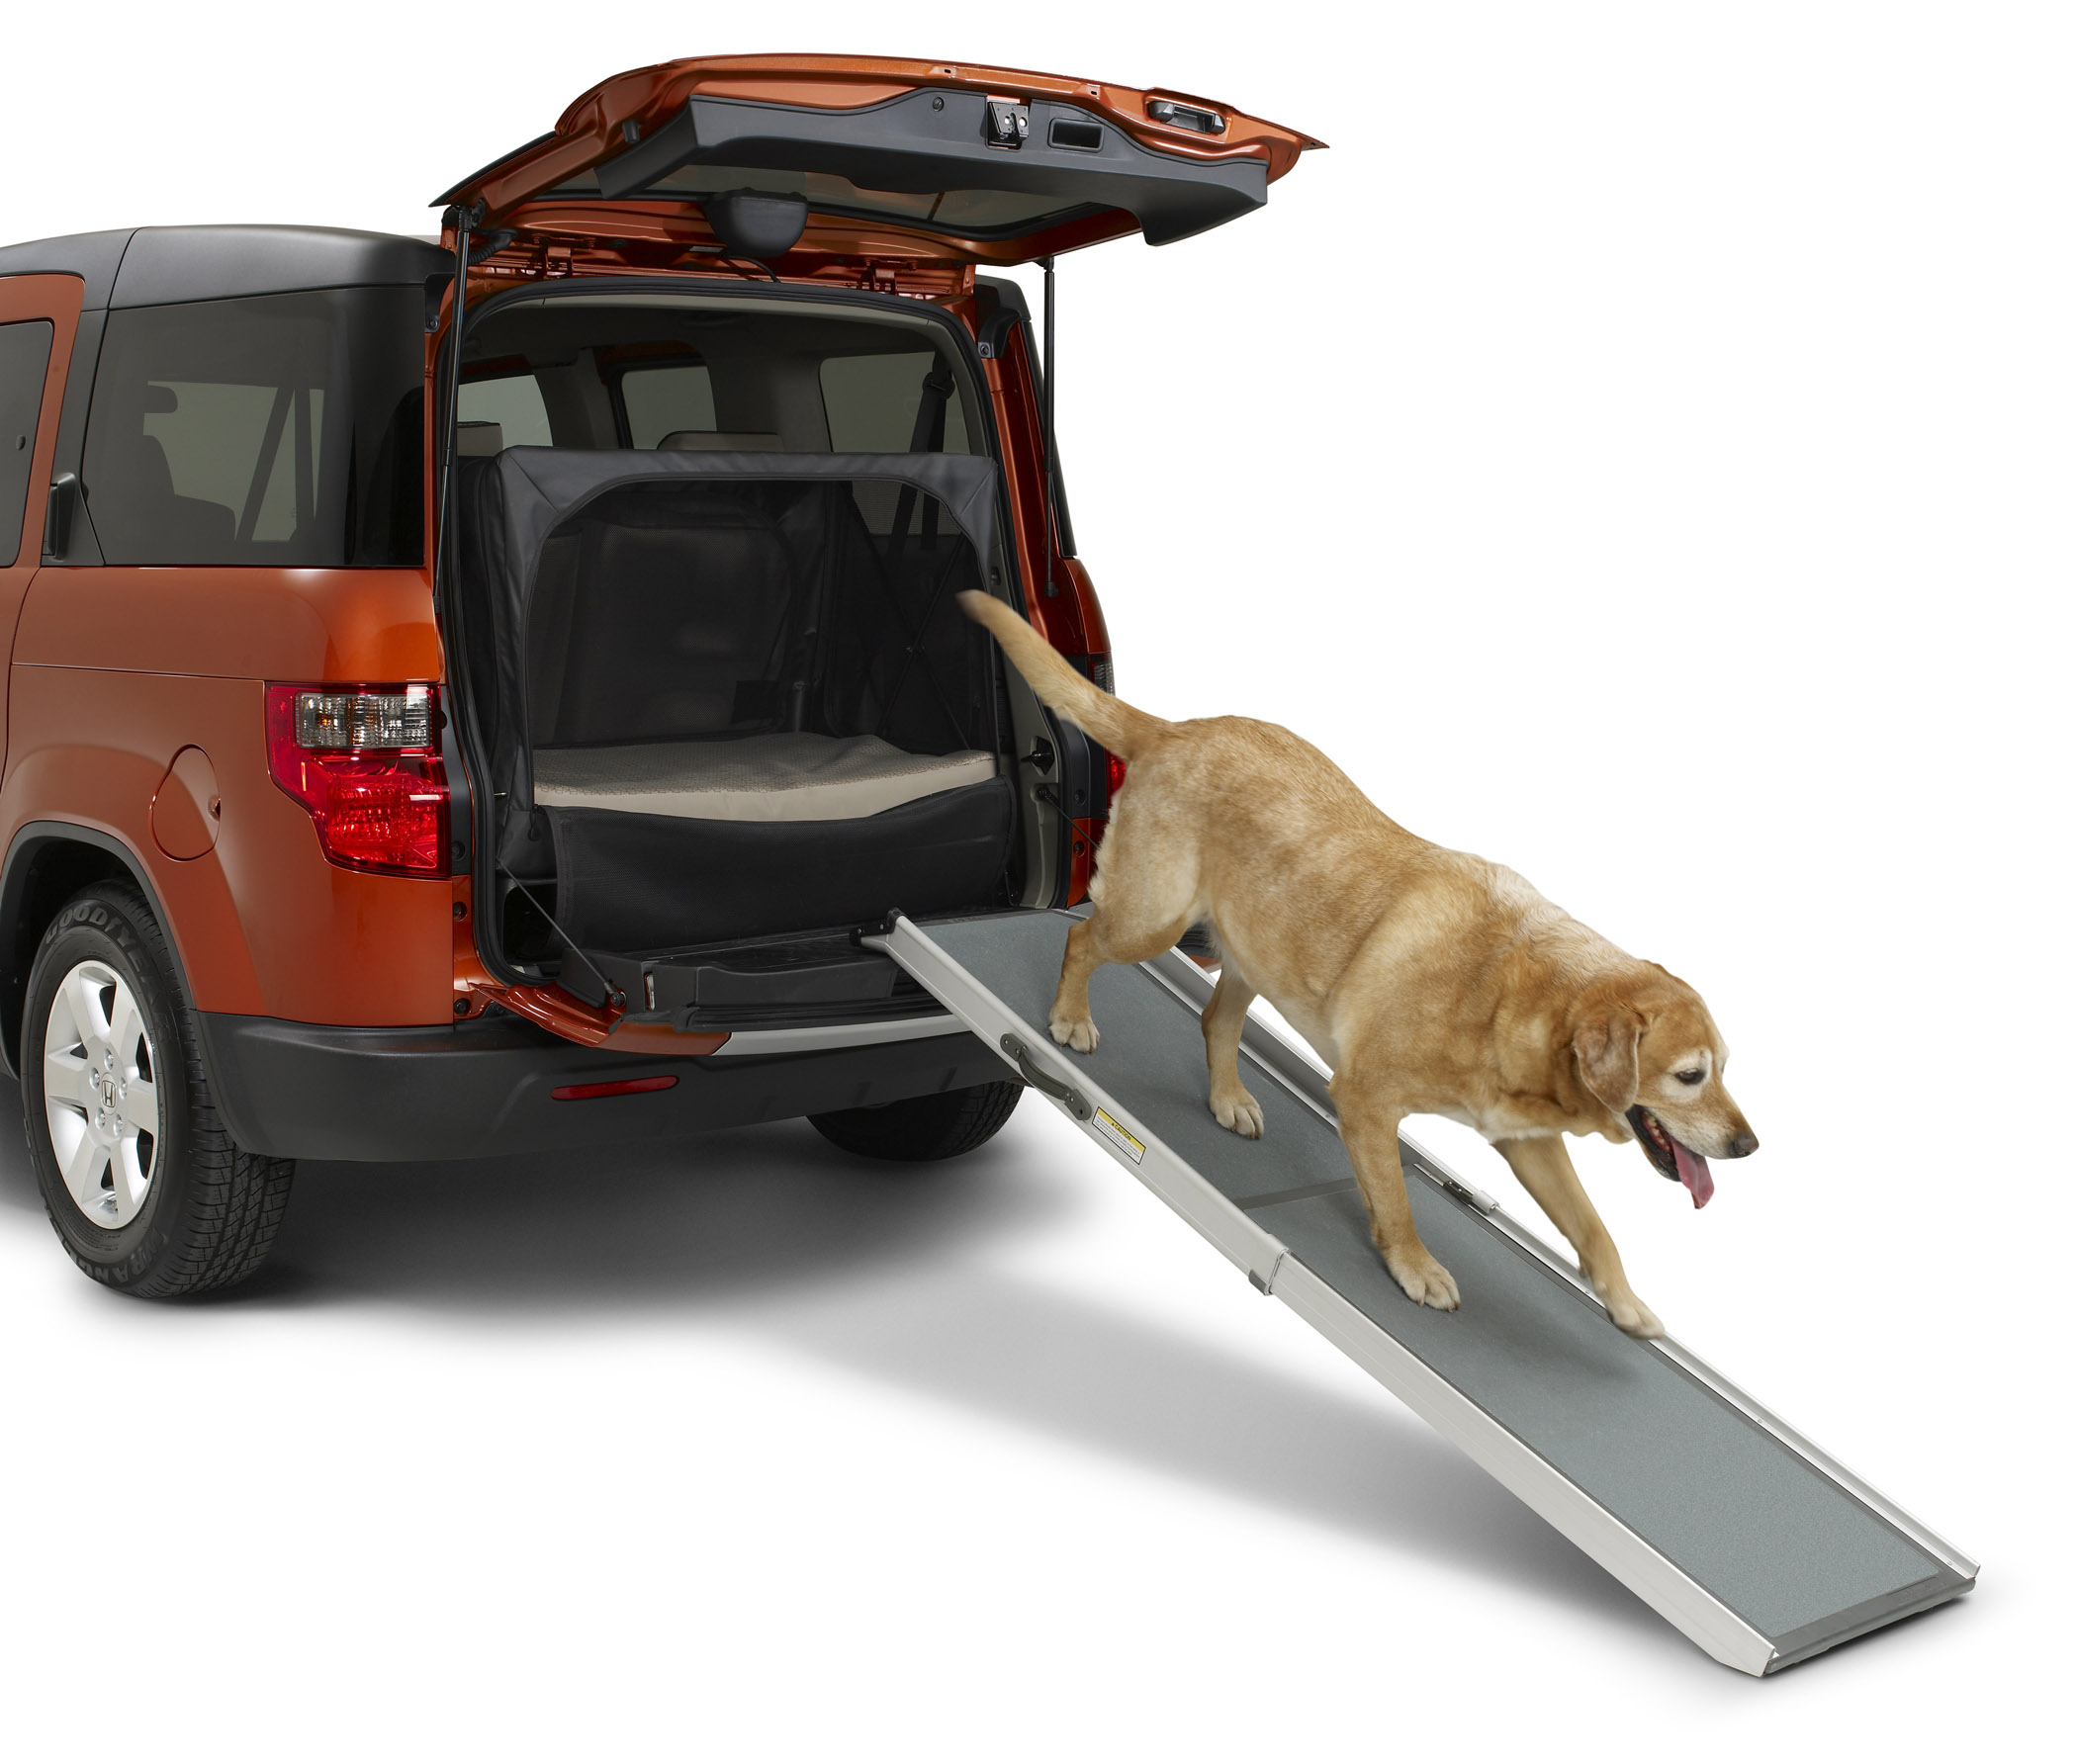 2010 Honda Element Equipped With A Travel Dog Kennel